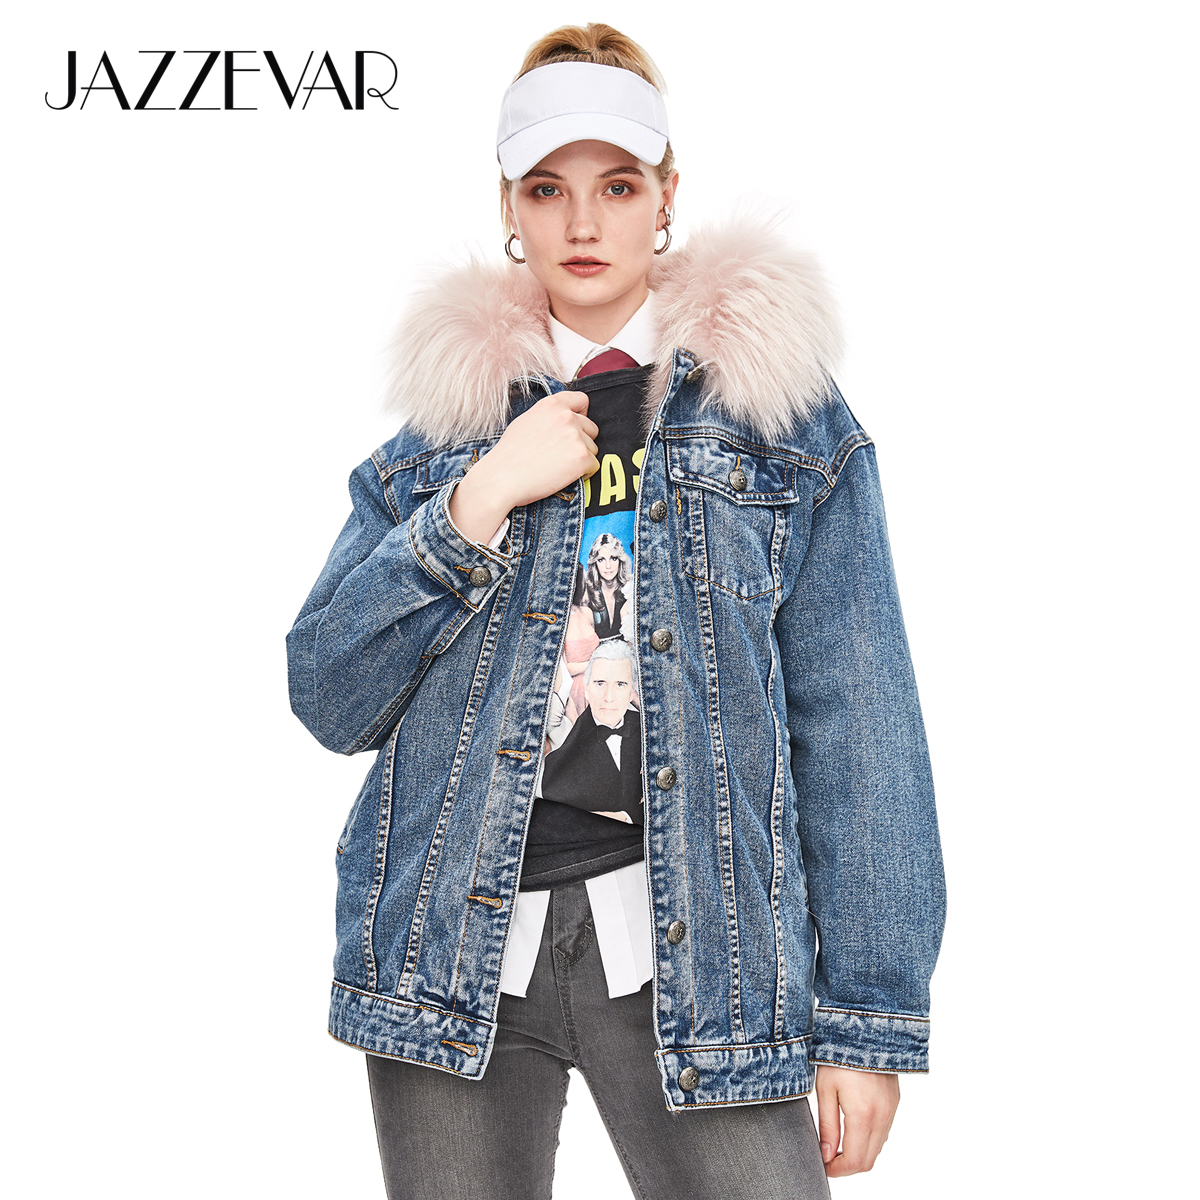 1f8038ef6d JAZZEVAR 2018 New Winter High Fashion Street Womens Denim Jacket Large Raccoon  Fur Parka Detachable Fur lined Hooded Coat-in Real Fur from Women's  Clothing ...